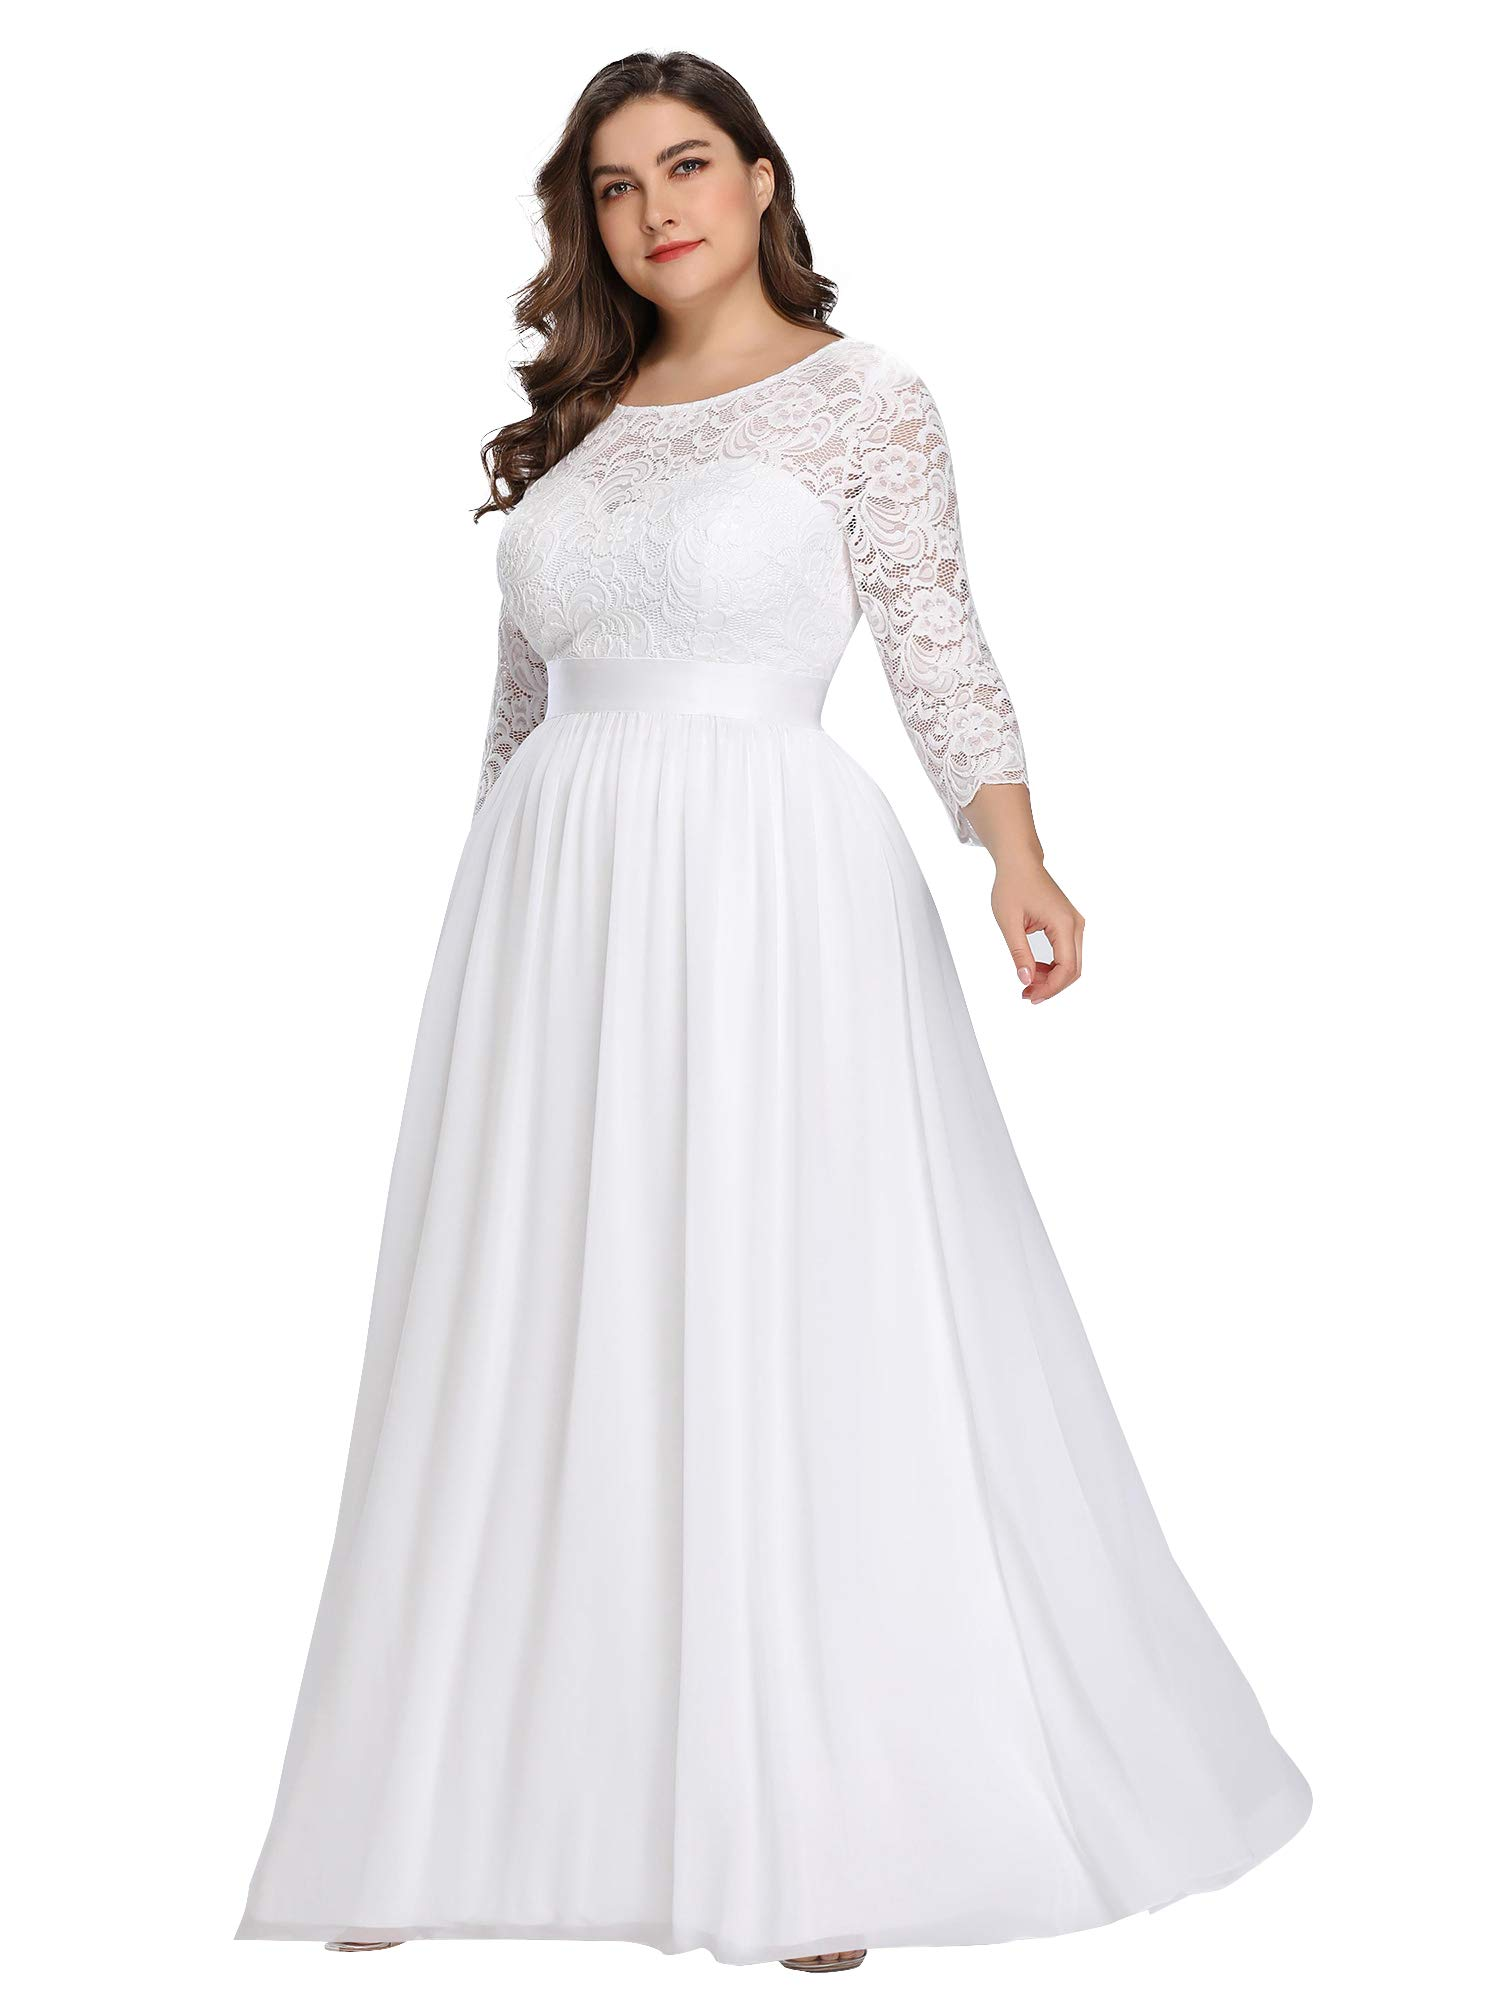 Alisapan Womens Formal Evening Dress Plus Size Special Occasion Dresses for  Women White US 22